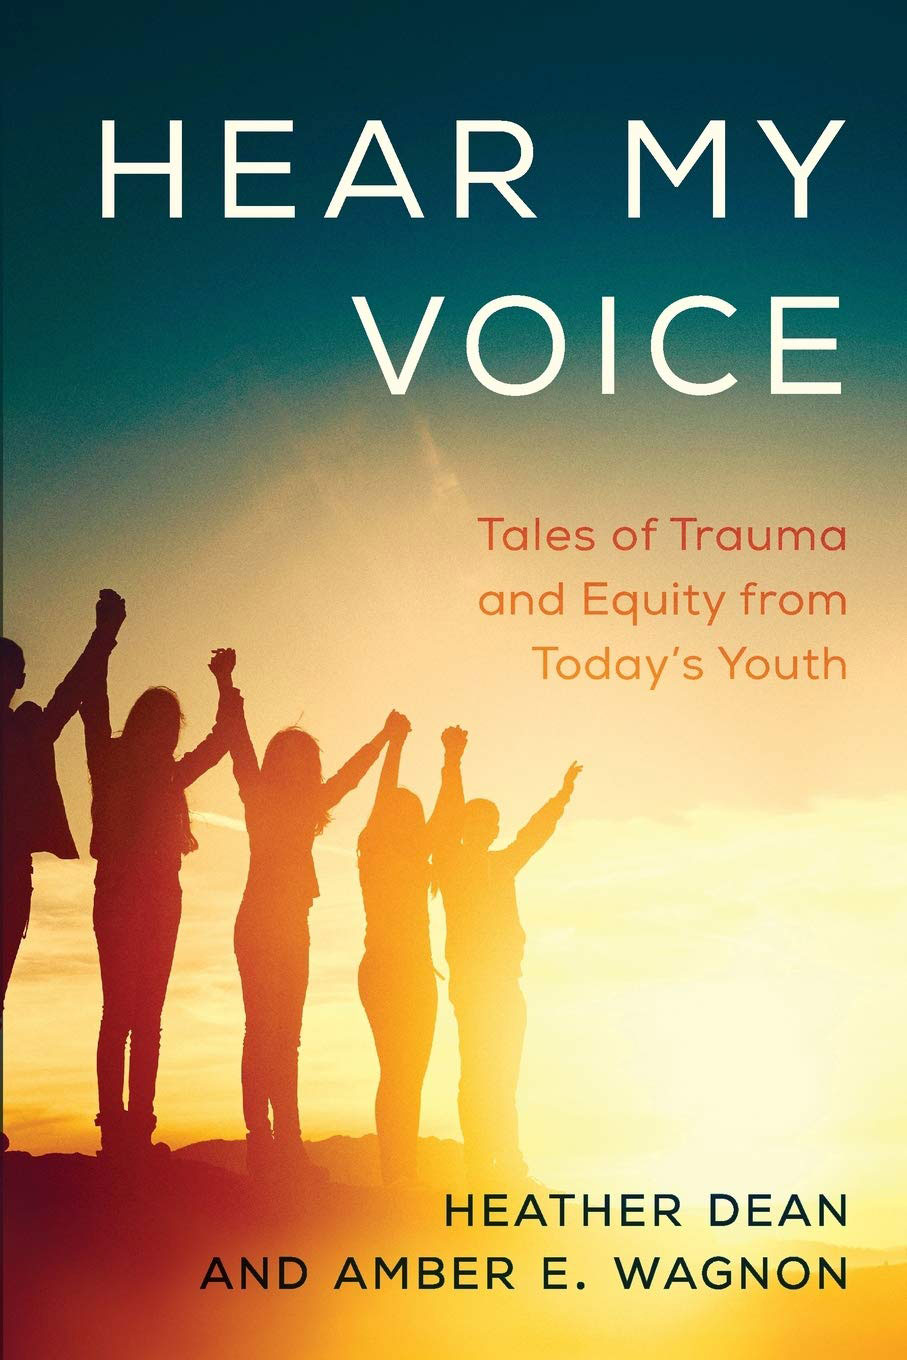 Hear My Voice: Tales of Trauma and Equity from Today's Youth